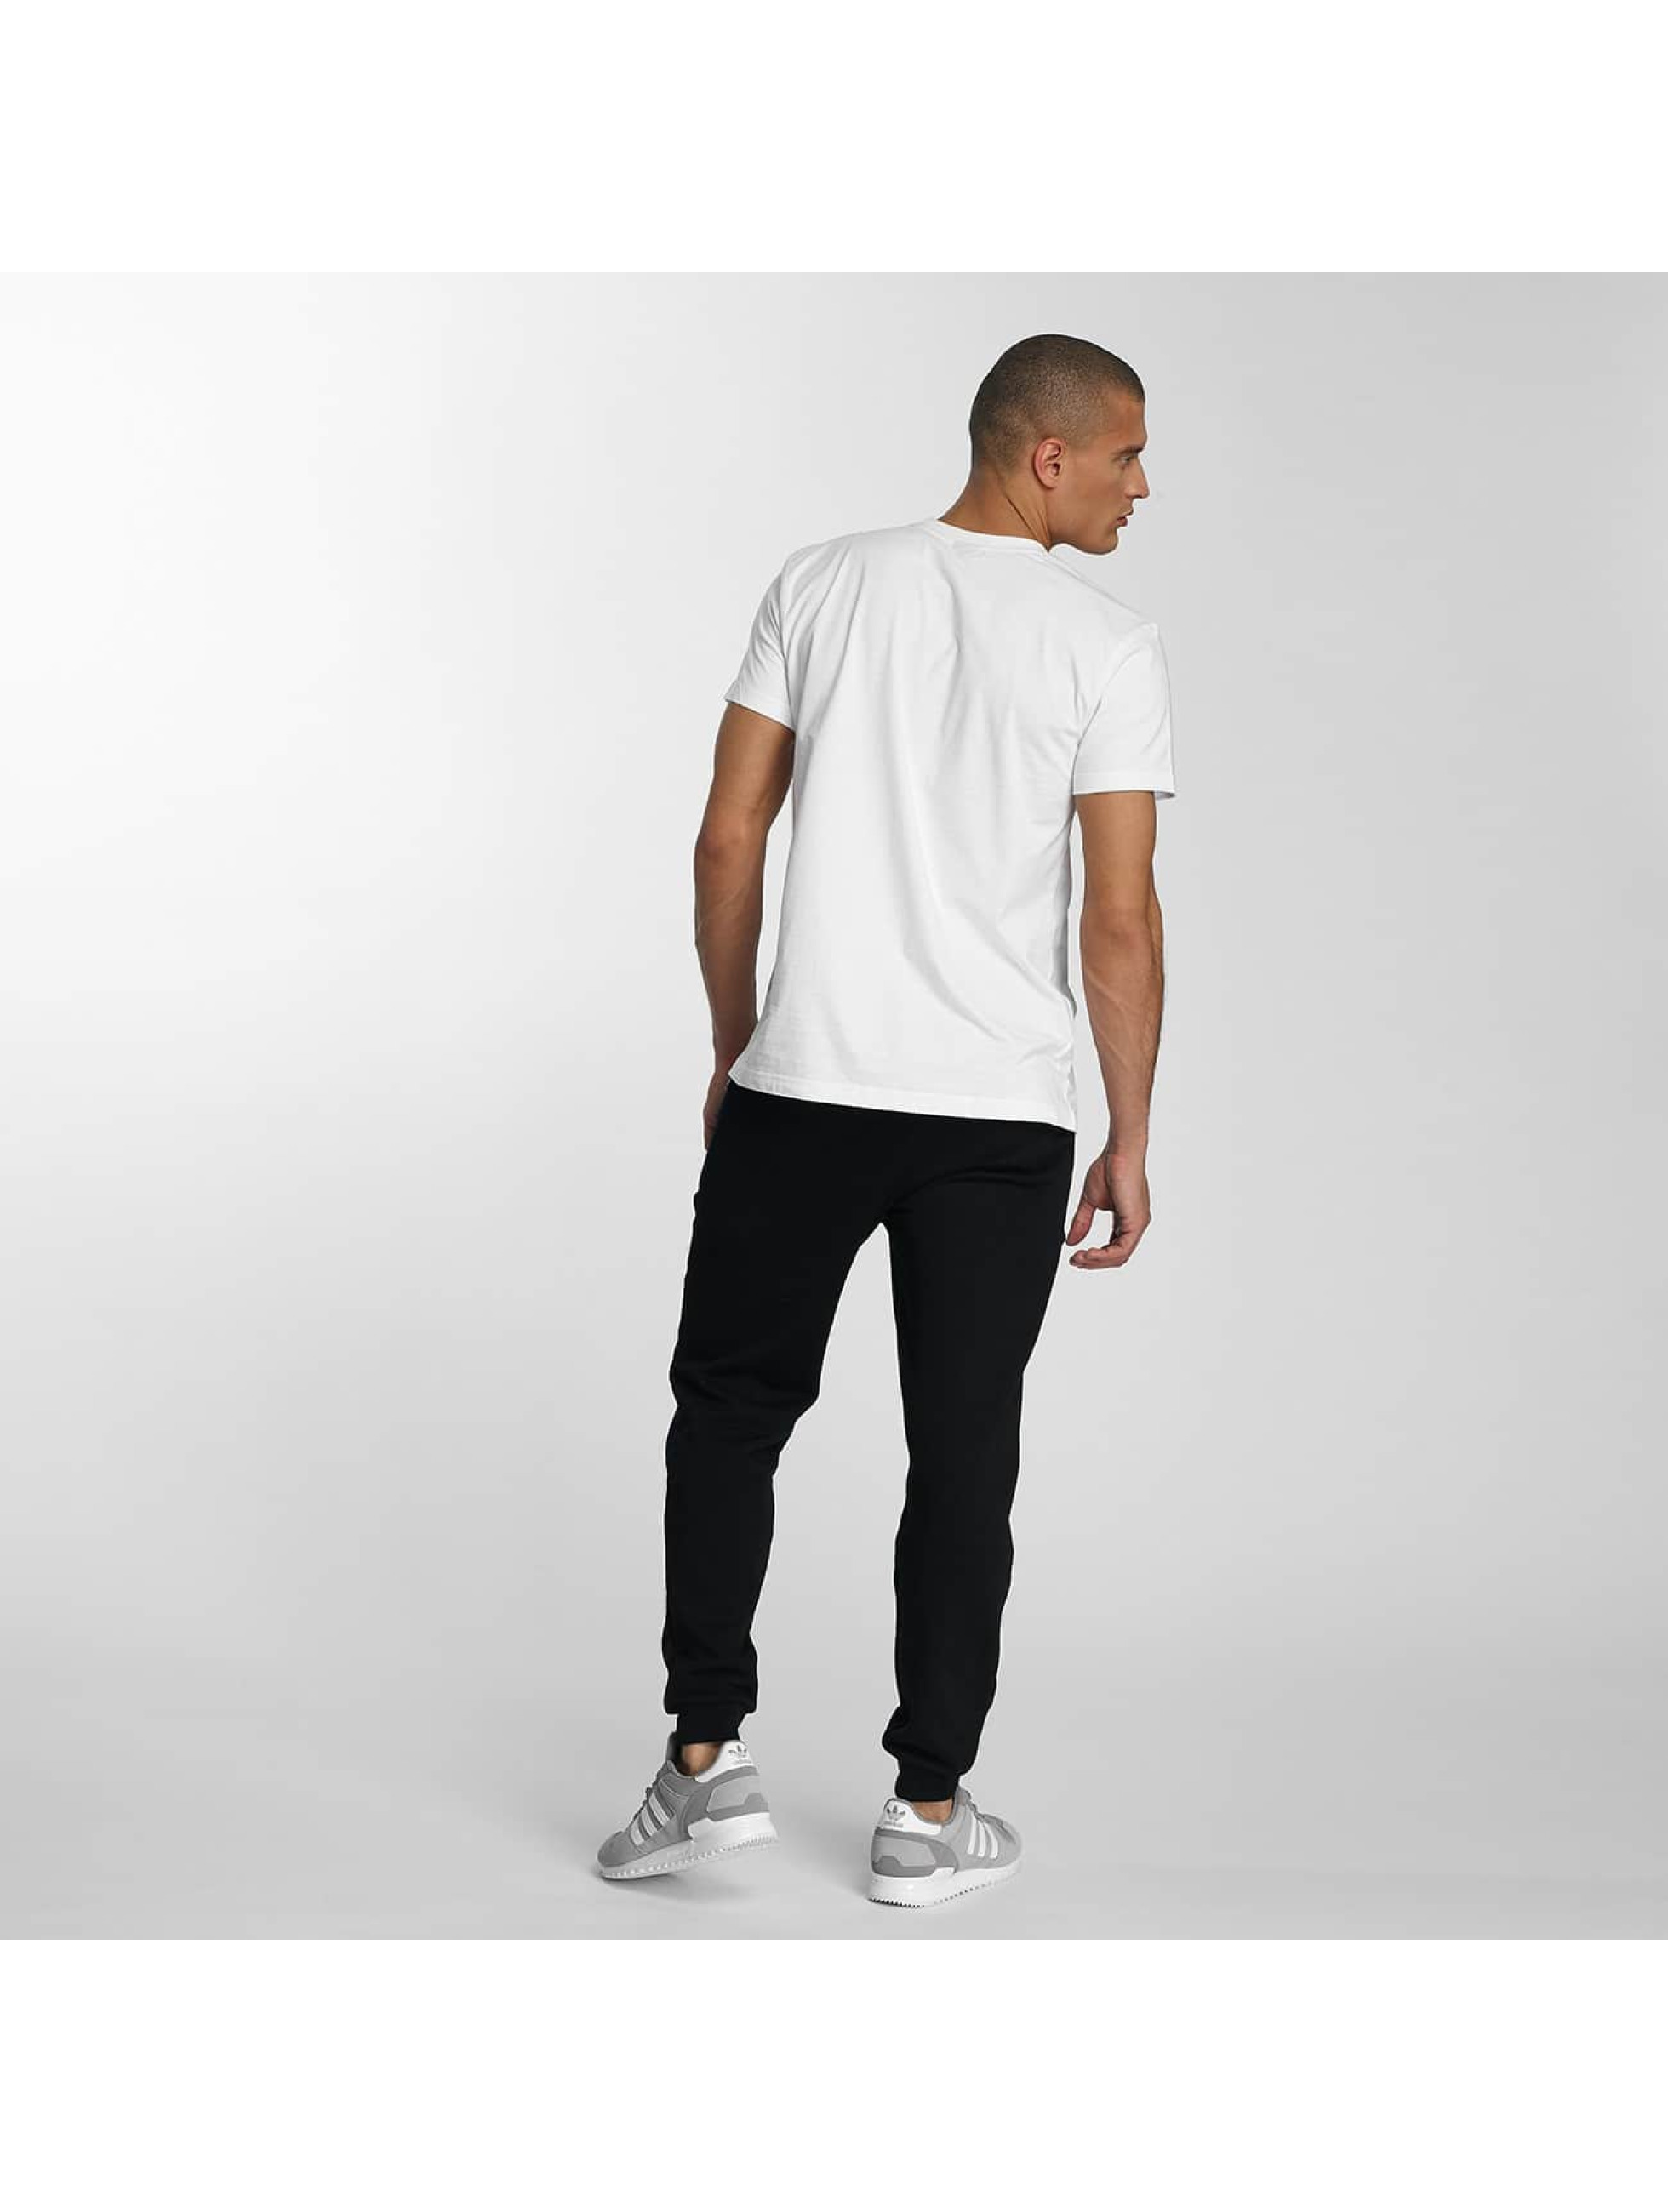 Pusher Apparel Joggebukser 215 Jacking svart